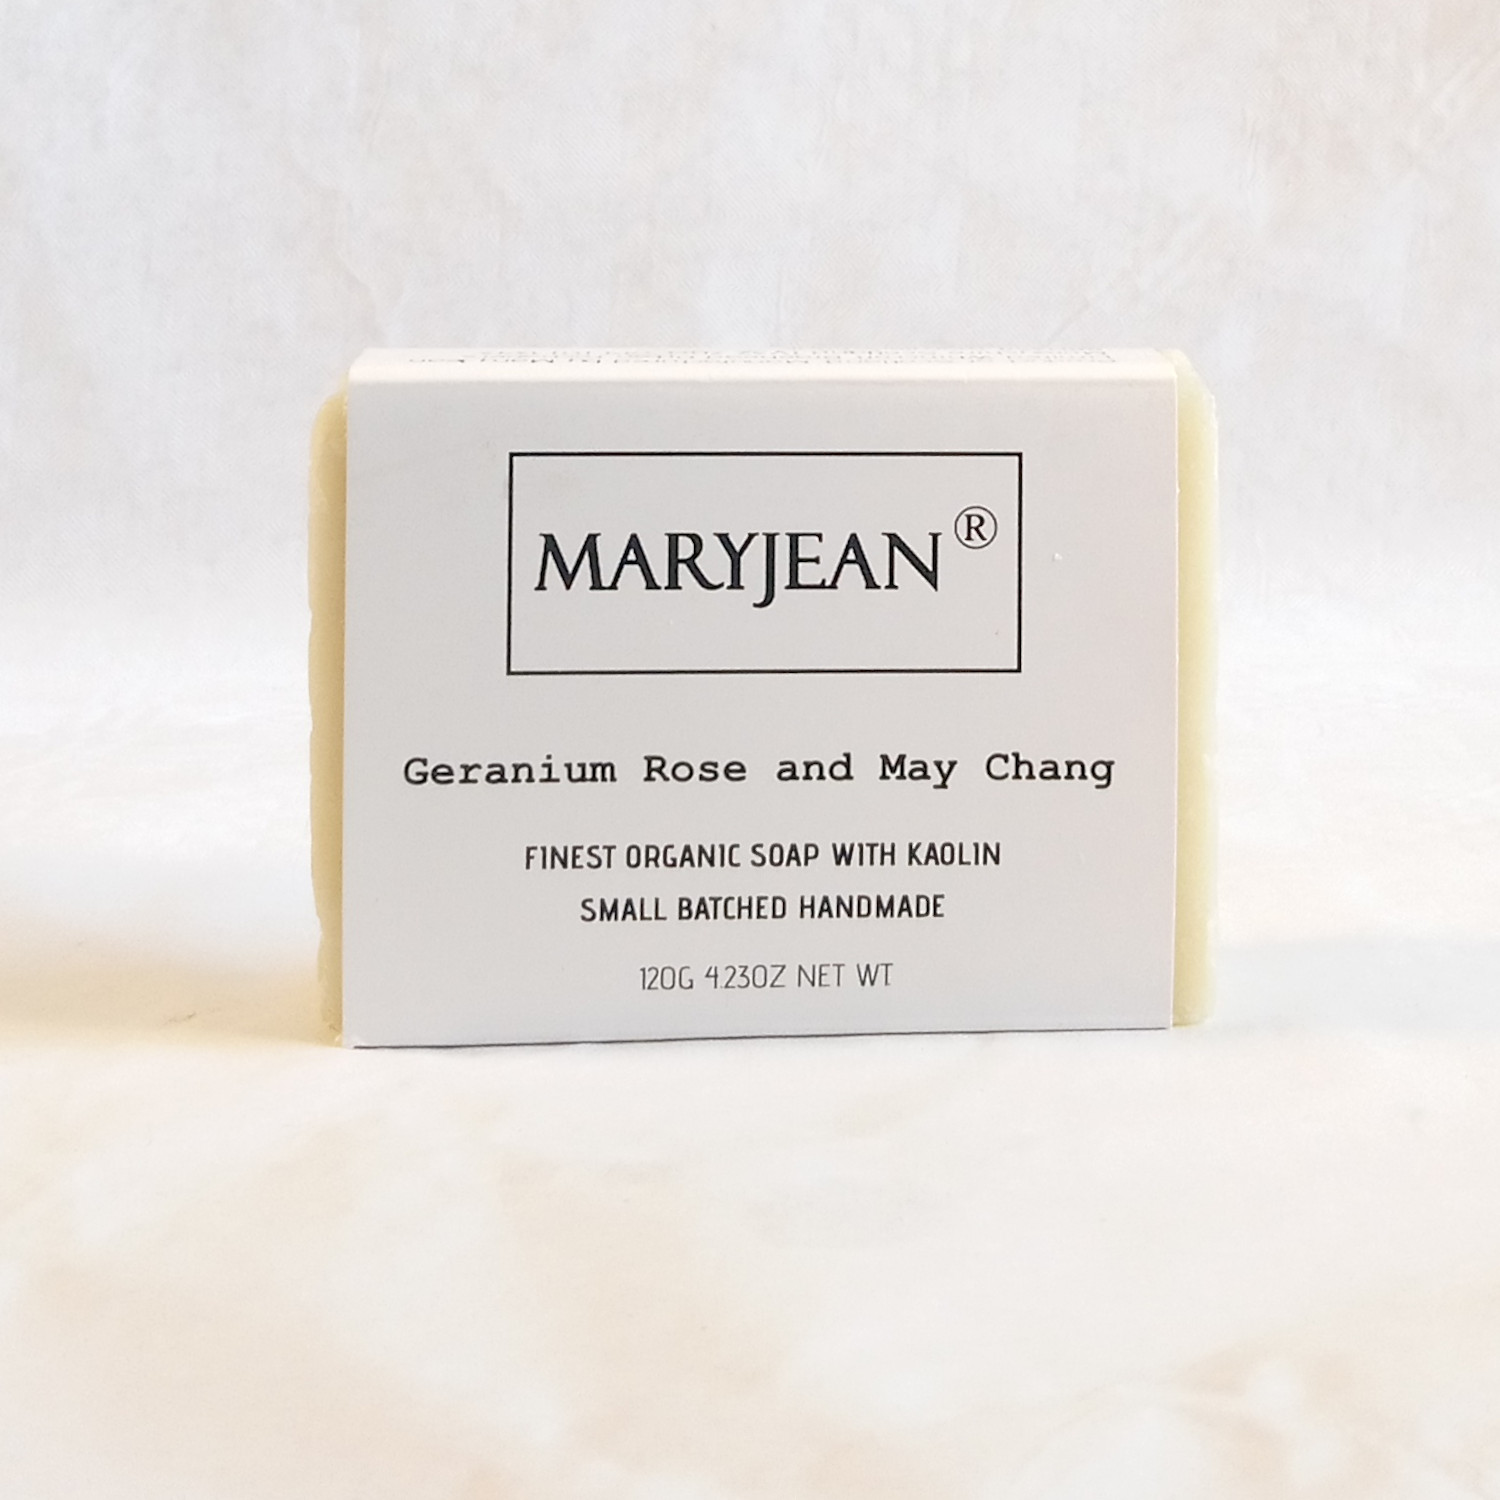 Enhance your skin health with this wet shaving natural shaving soap bar for sensitive and all skin types with moisturising aromatherapy Olive oil and Kaolin clay Organic Scottish Geranium May Chang Gentlemen's Shaving Soap Handmade With Kaolin